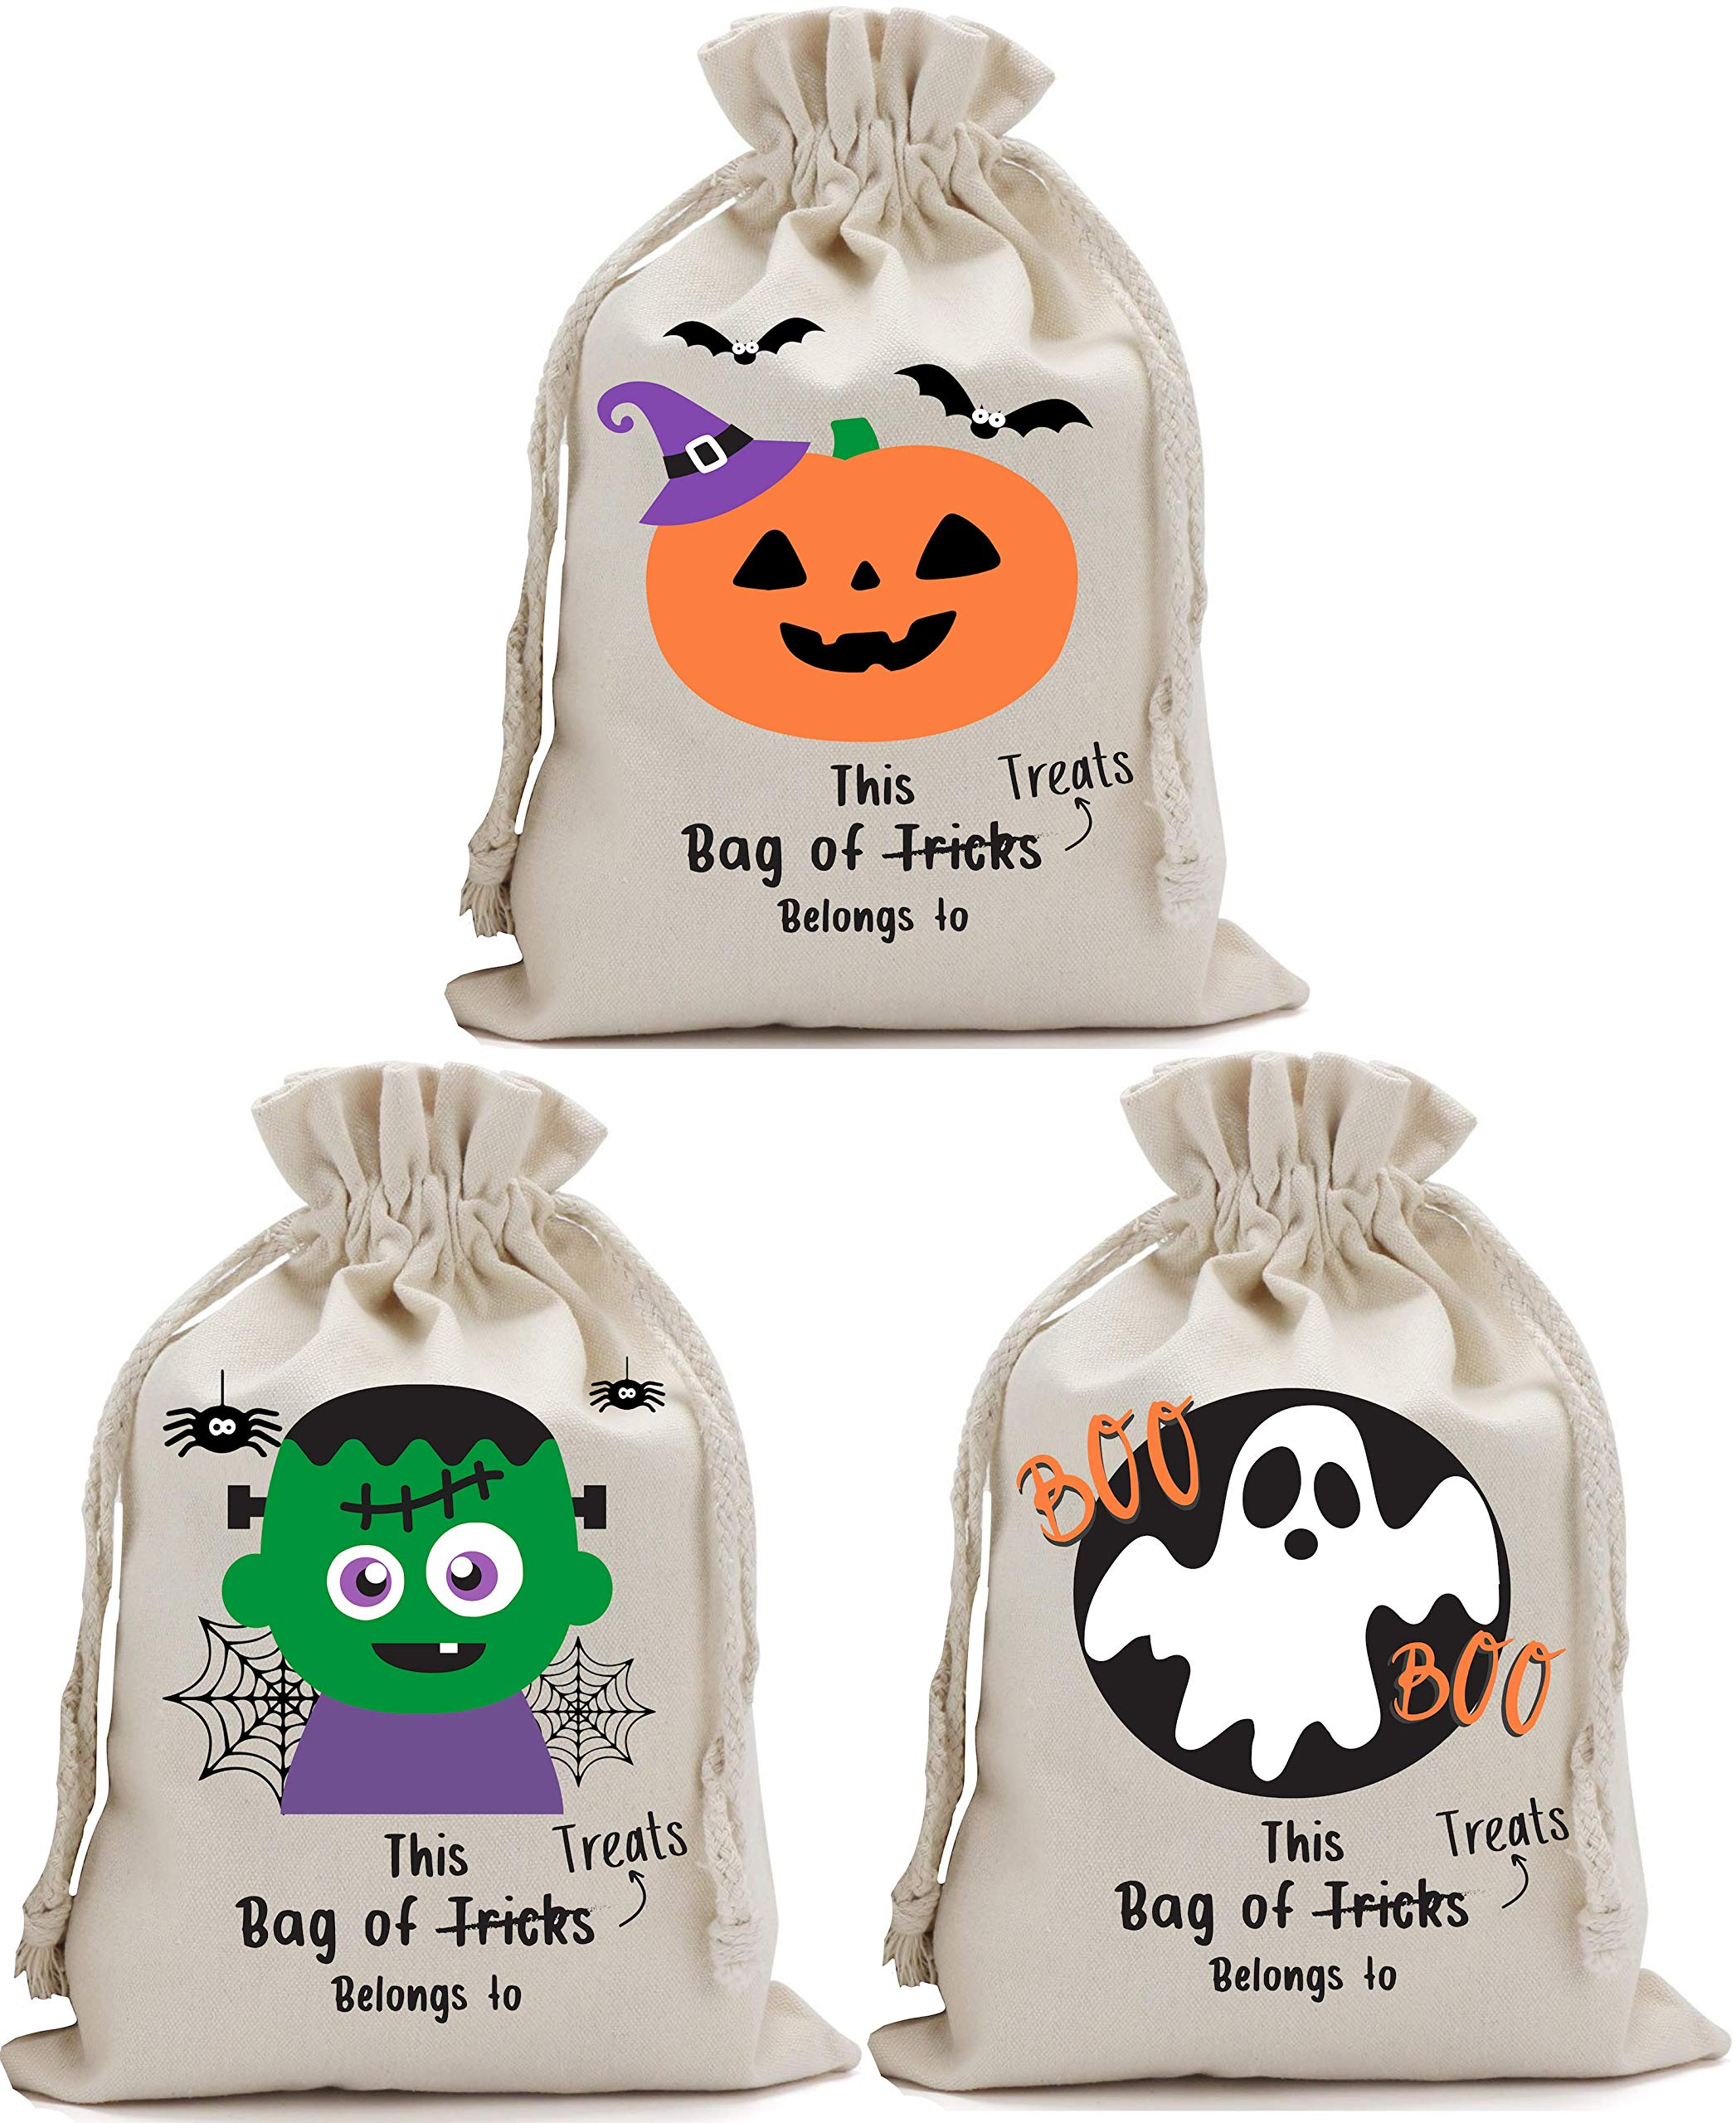 Partay Shenanigans Halloween Bags for Trick or Treat 3 Pack - Halloween Tote Sacks 14 inches x 17 inches